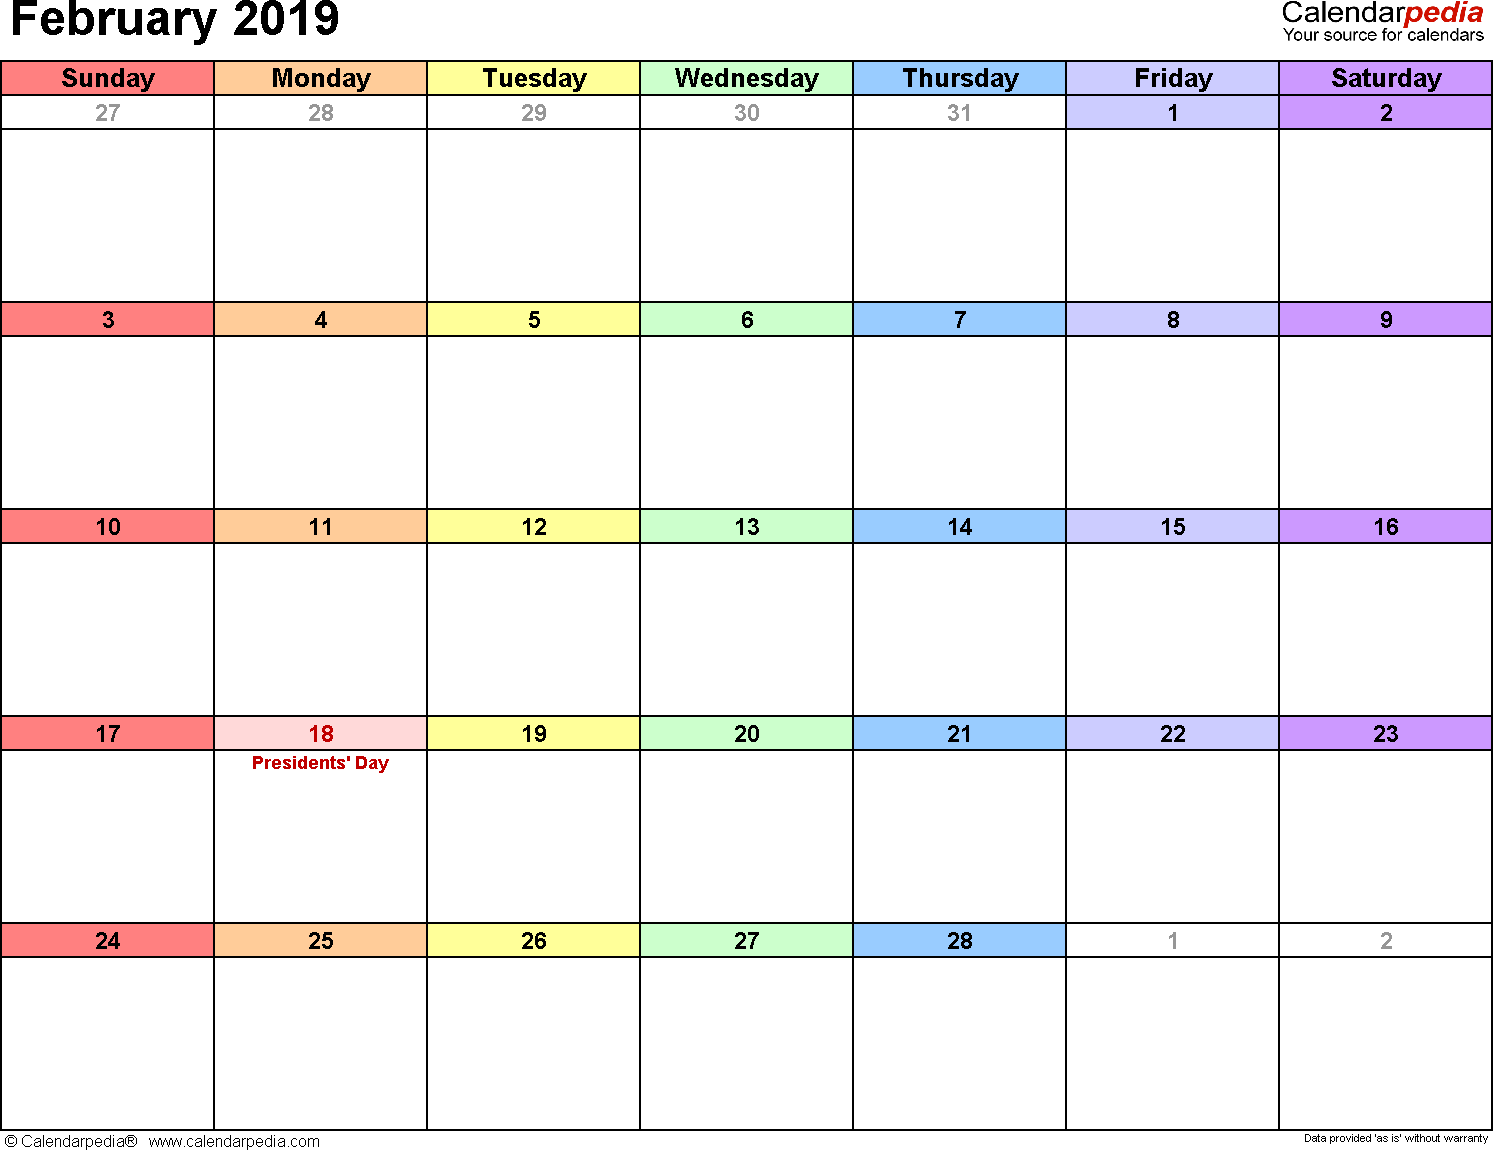 Daily Calendar 2019 February February 2019 Calendars for Word, Excel & PDF